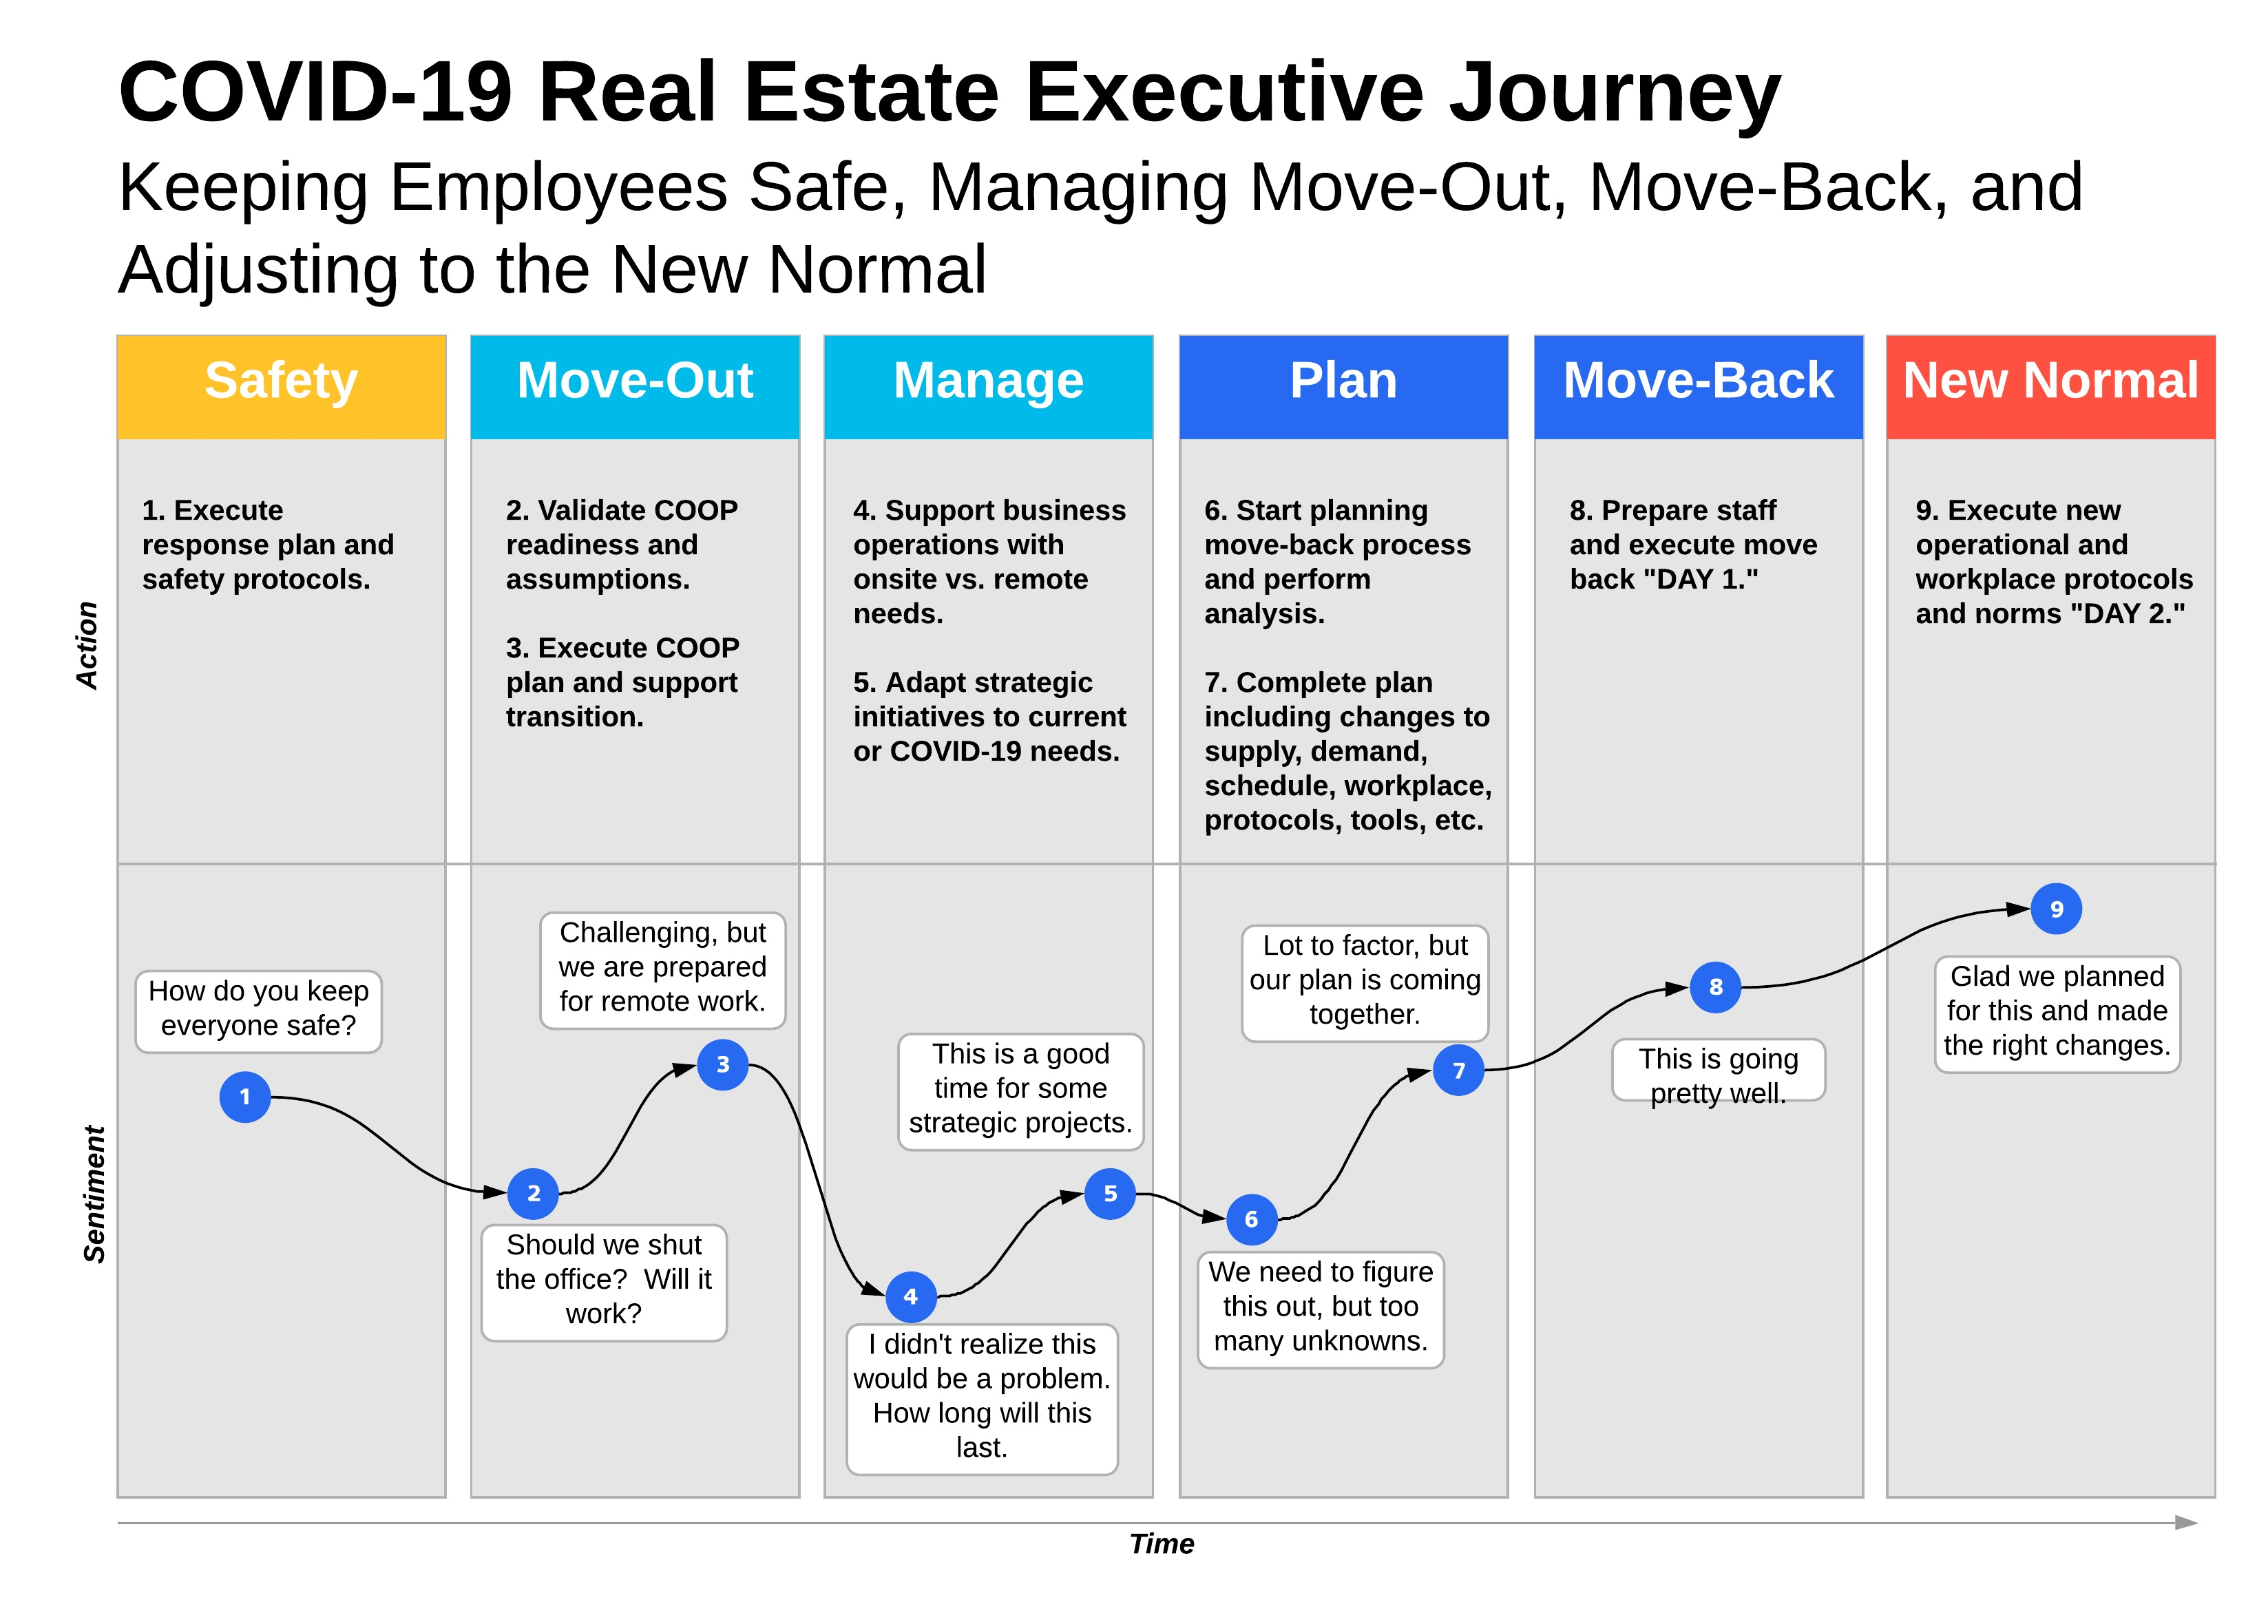 COVID-19 Real Estate Executive Journey